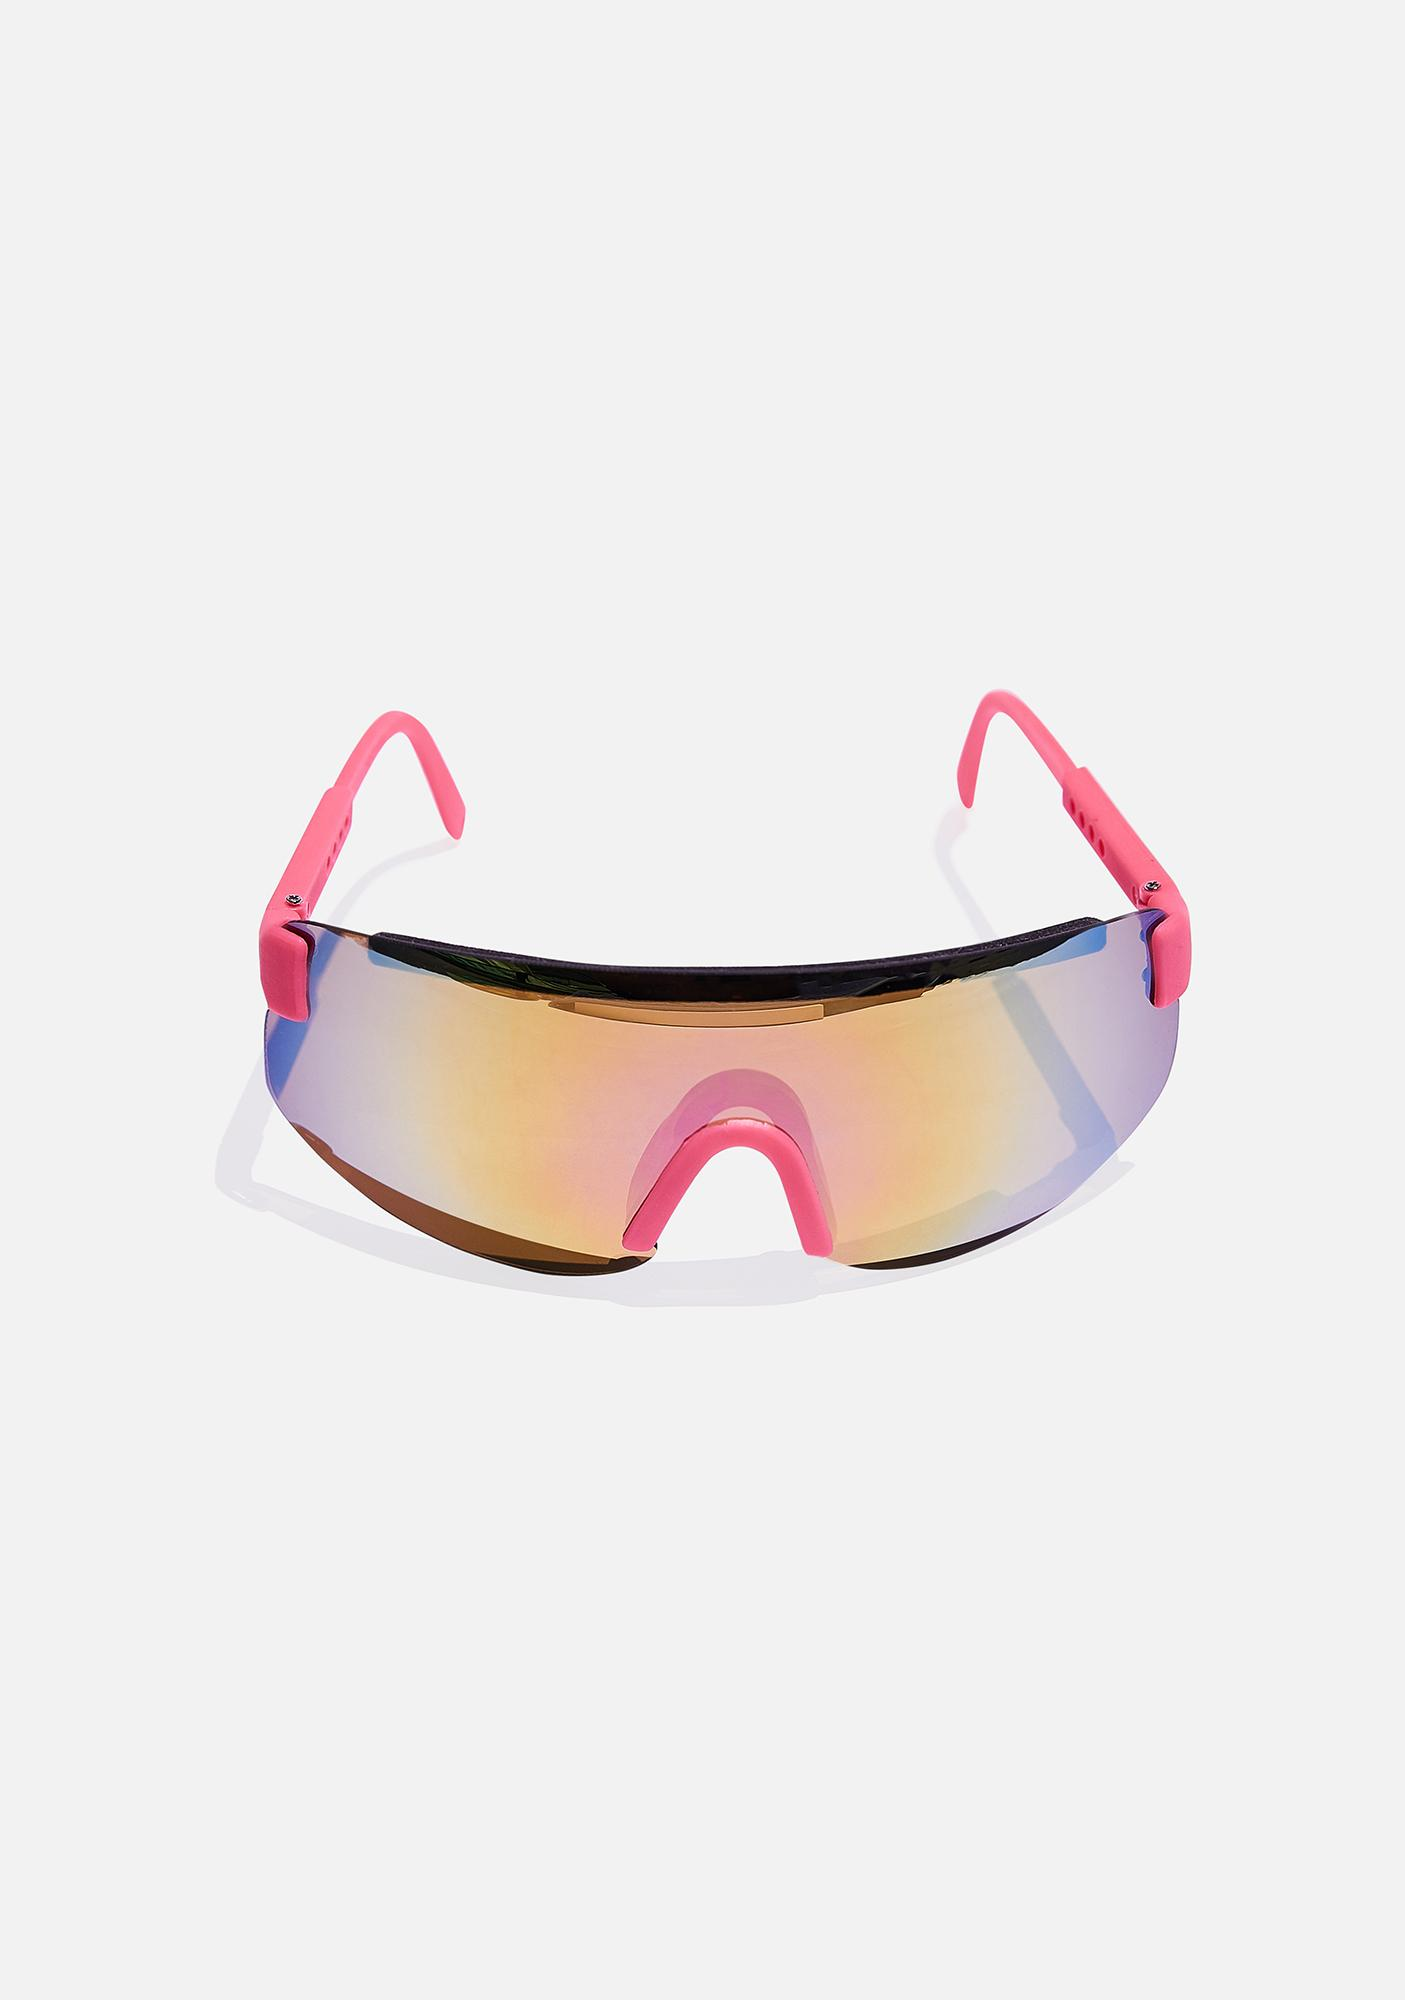 Good Times Eyewear Pink Beach Sunglasses